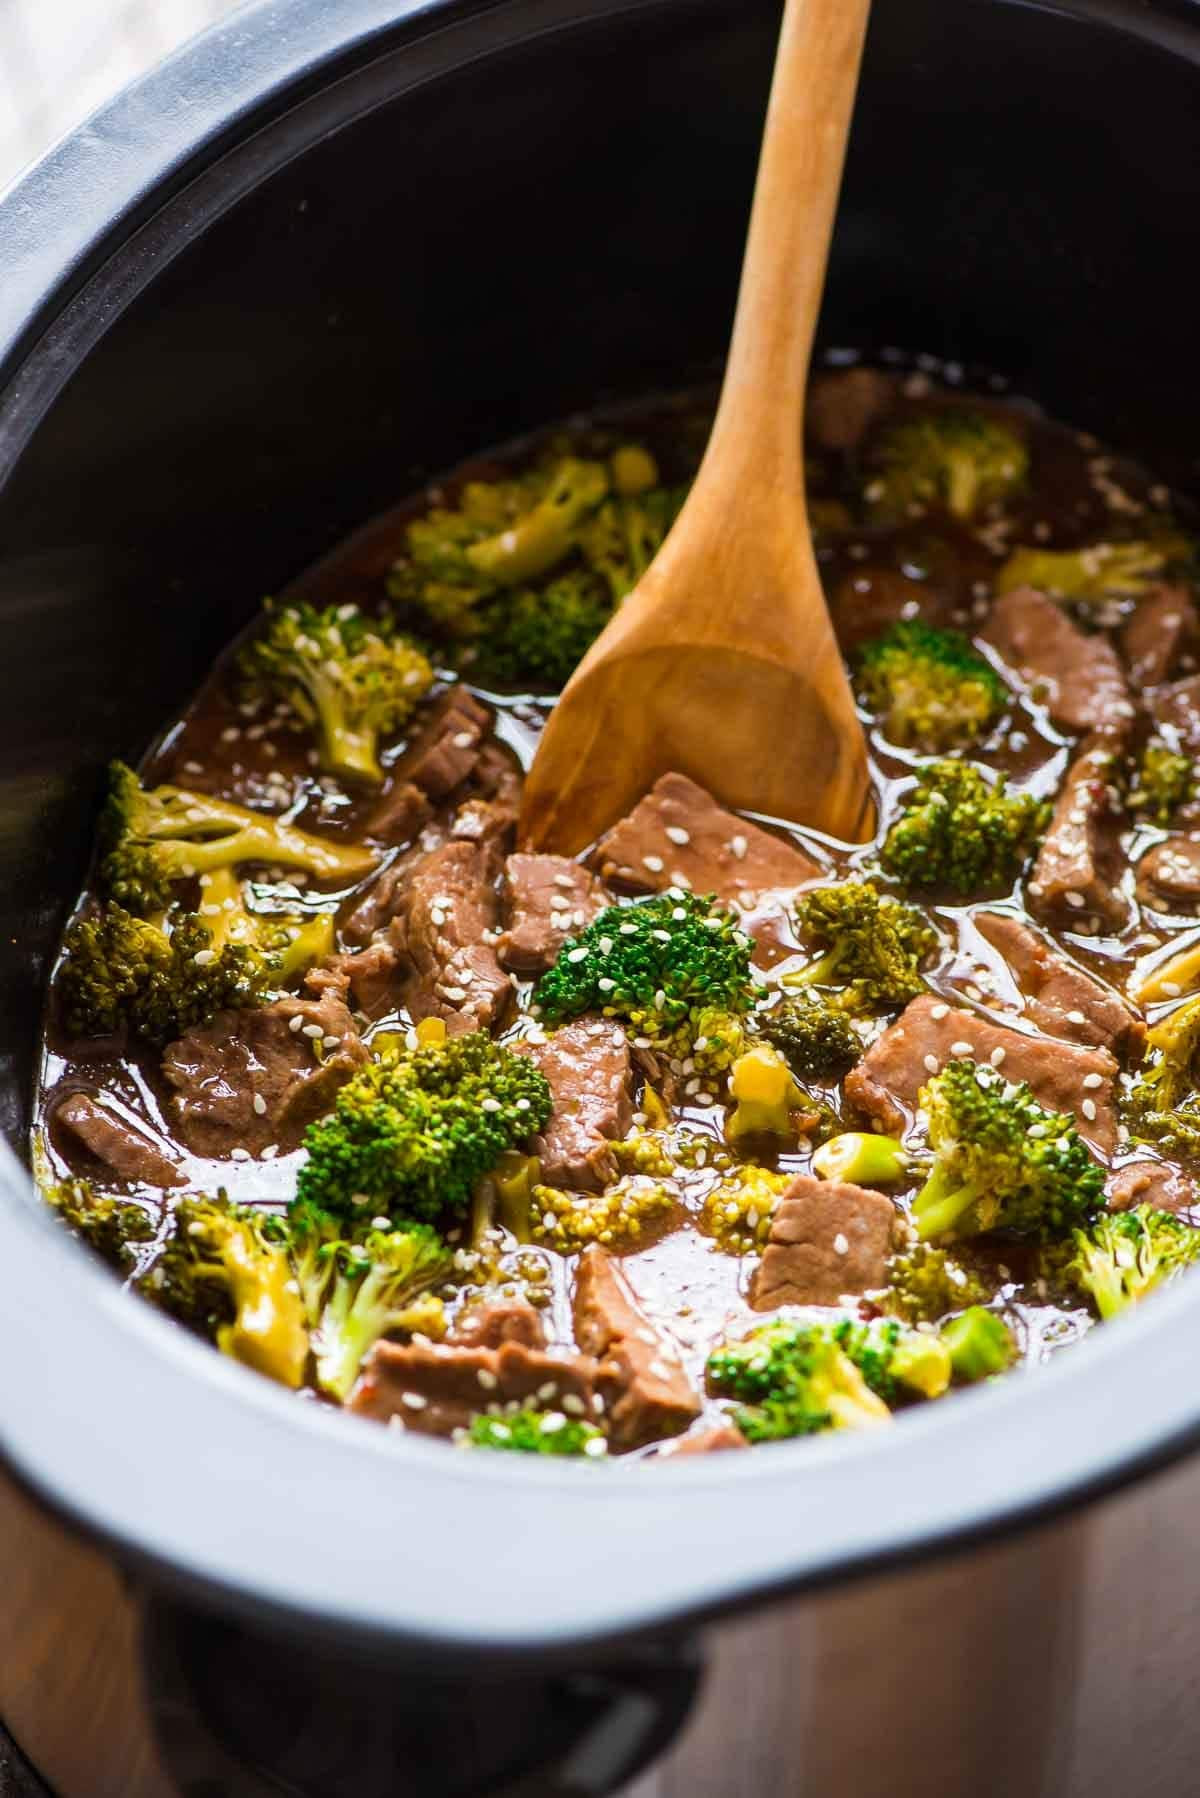 Easy Healthy Slow Cooker Recipes  Slow Cooker Beef and Broccoli